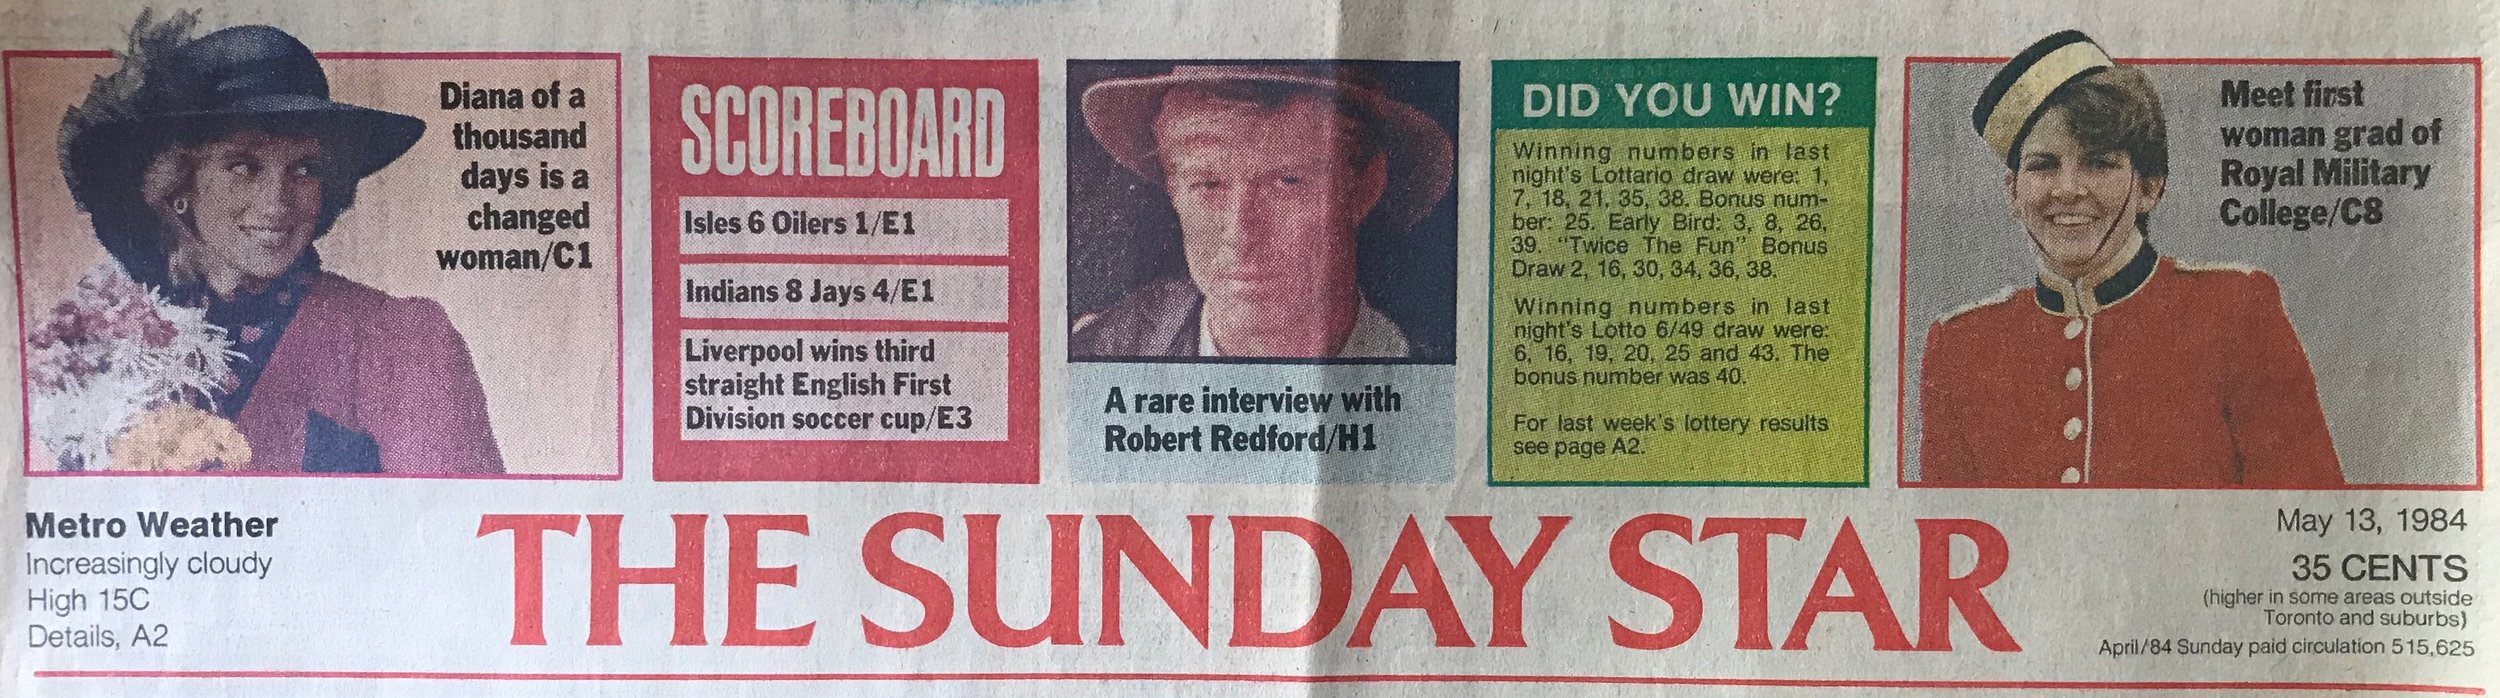 The front page headline banner for the Sunday Edition of The Toronto Star in 1984 continues to amaze me. It was a surreal moment to see myself featured alongside Princess Diana and Robert Redford.